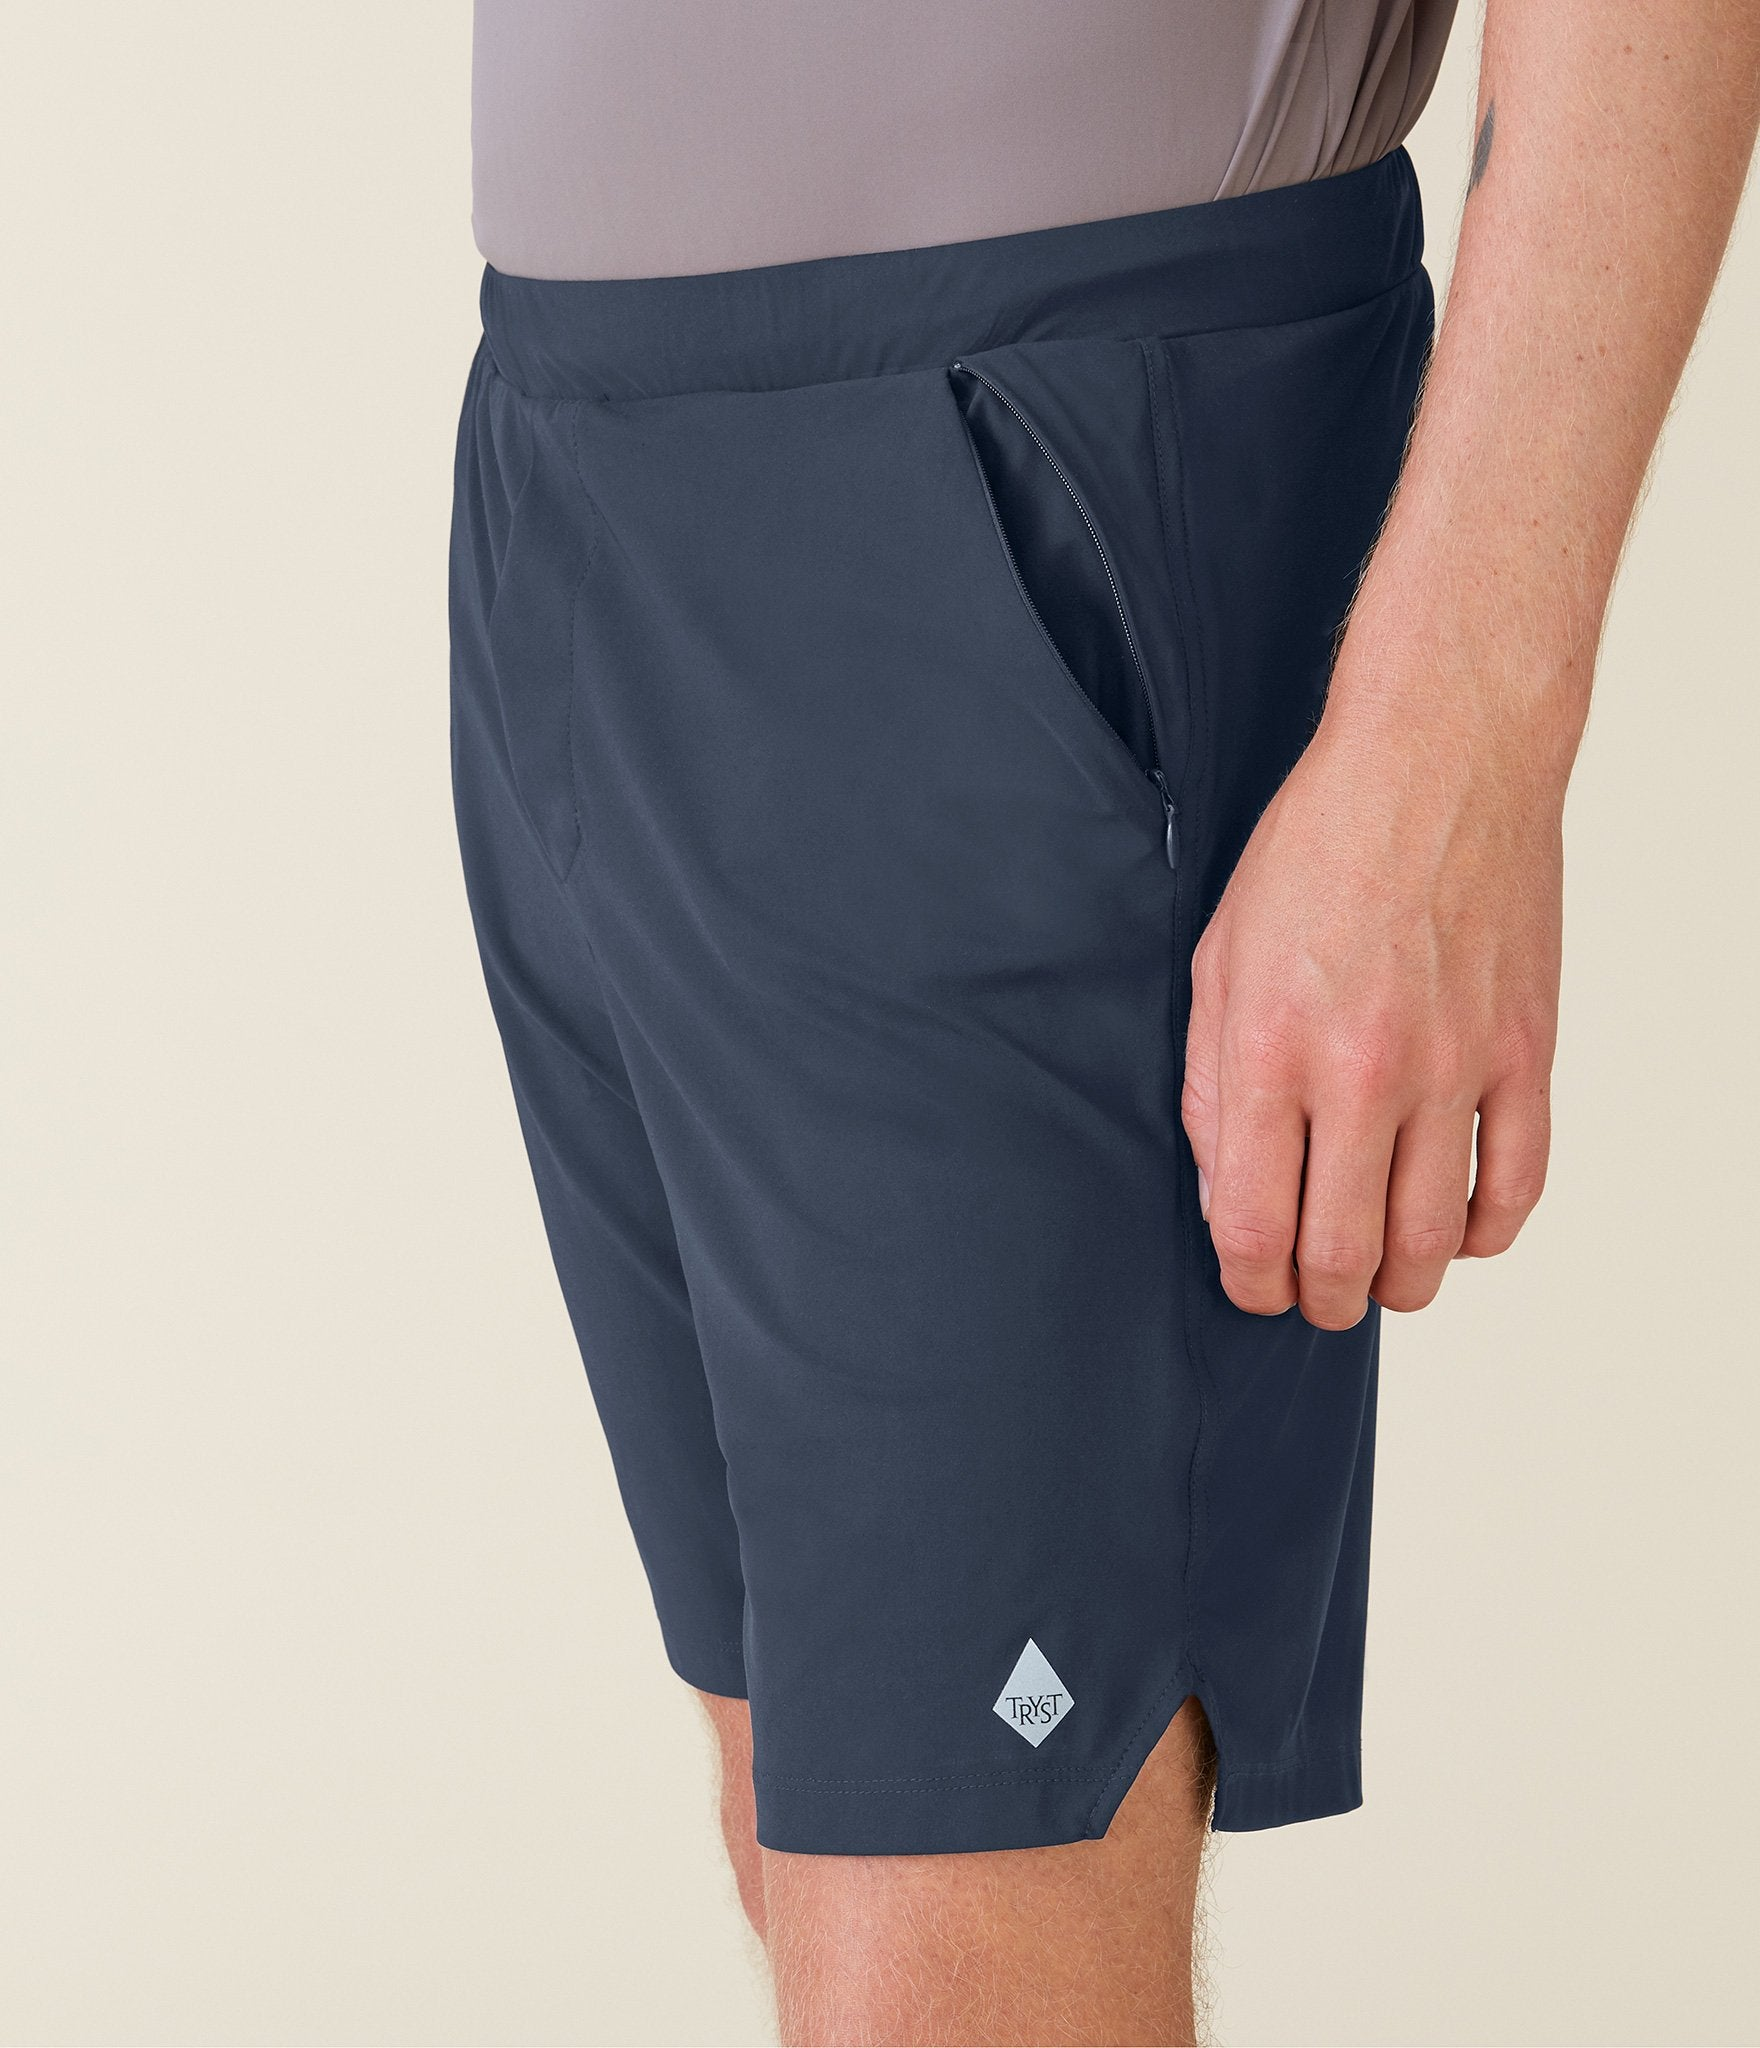 Cape Town shorts </br>Grey